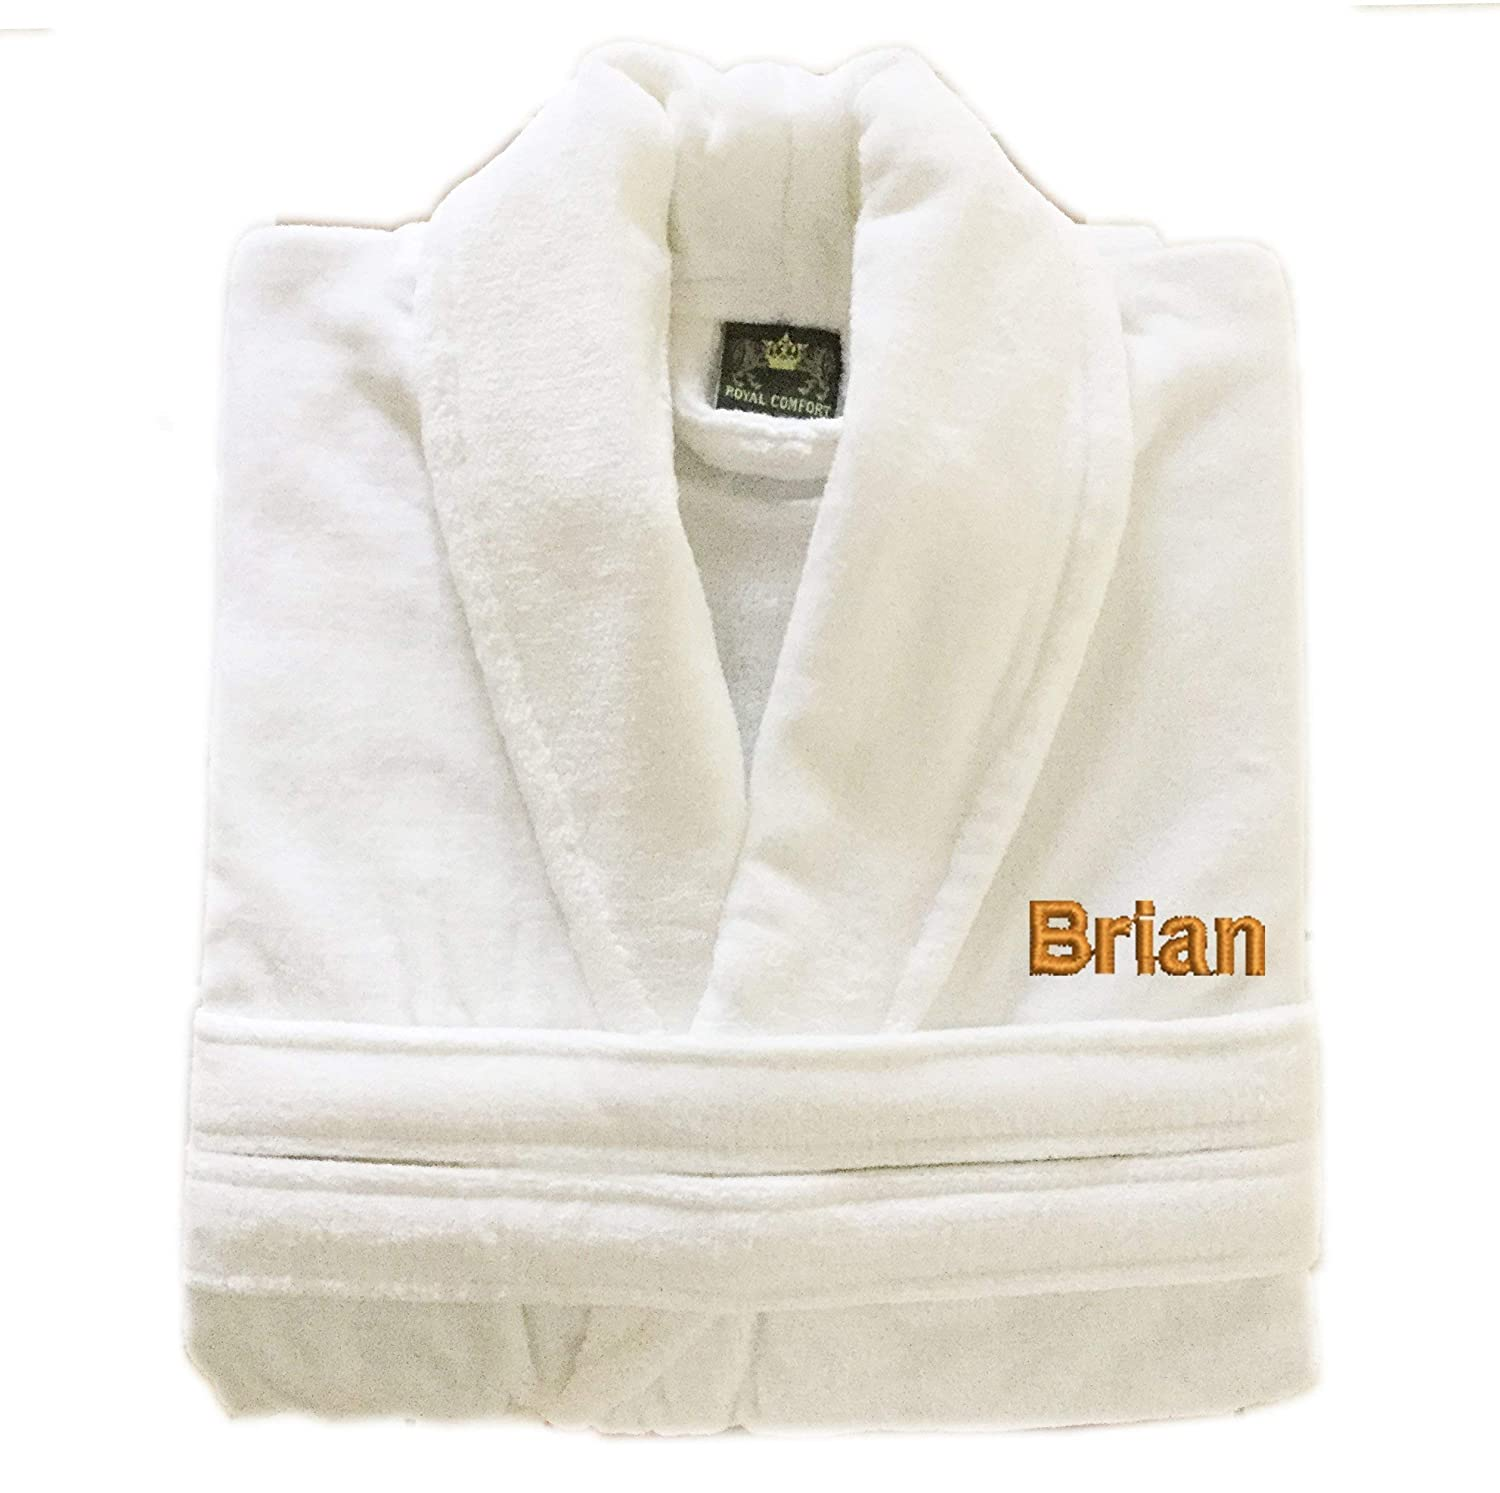 35b63a9fce Amazon.com  Personalized Monogrammed Turkish Cotton Terry Velour Bathrobe   Handmade